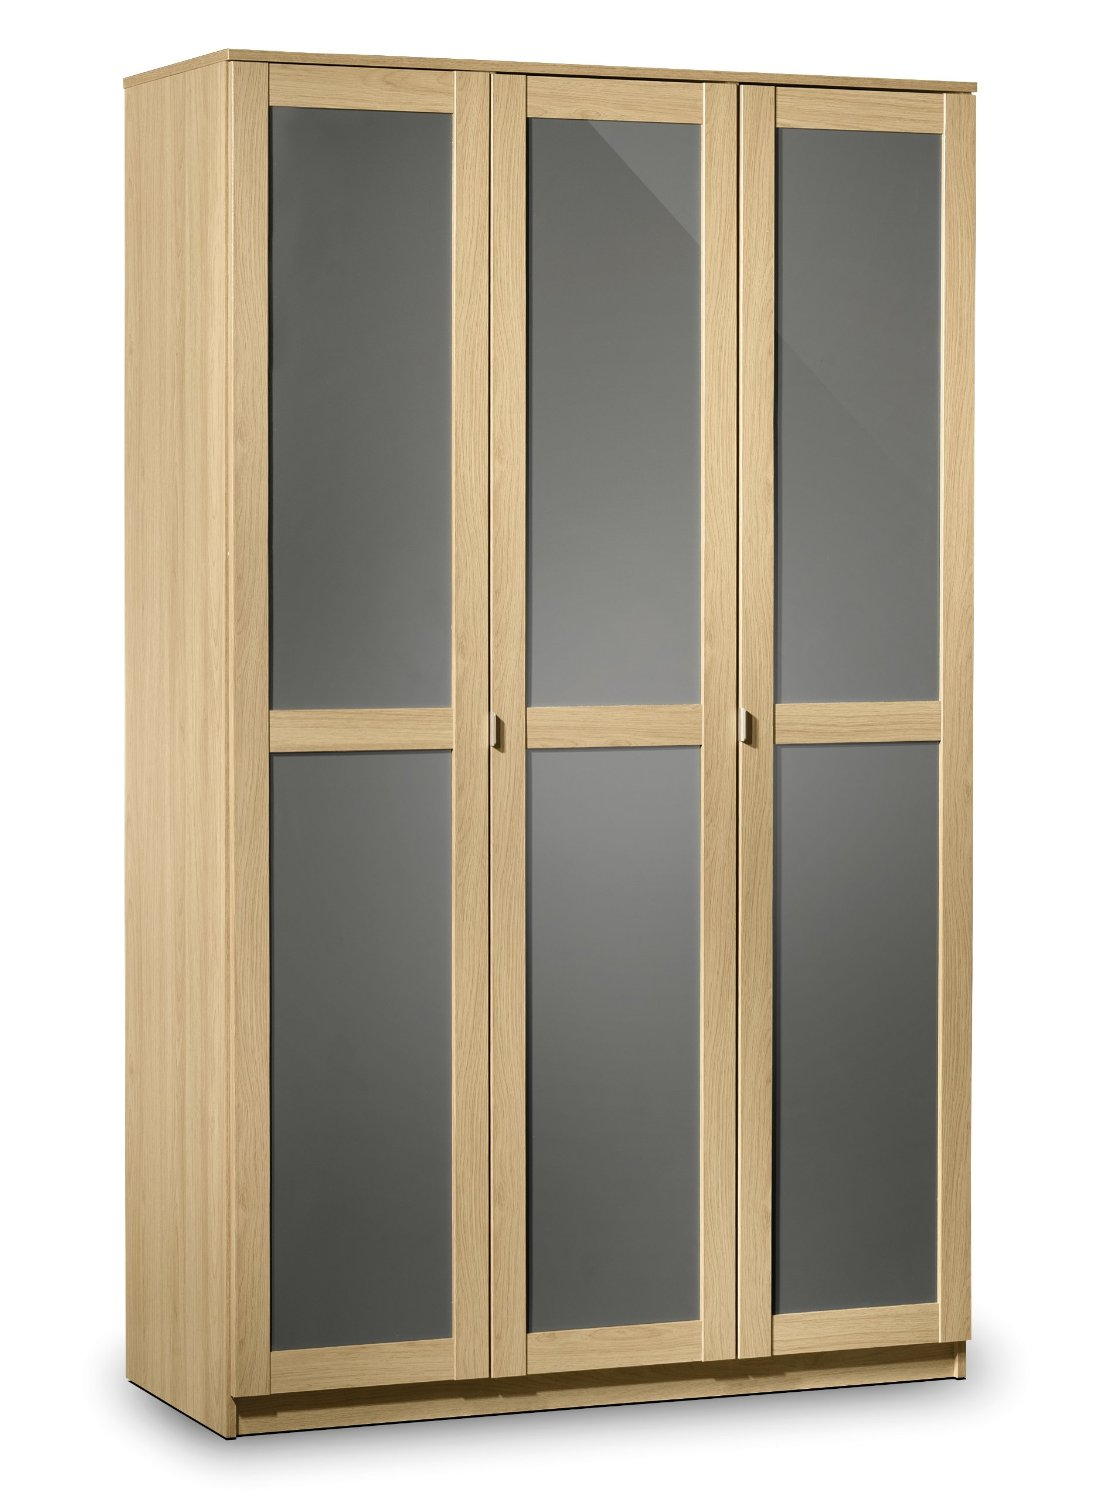 Photo of Julian bowen strada oak 3 door wardrobe